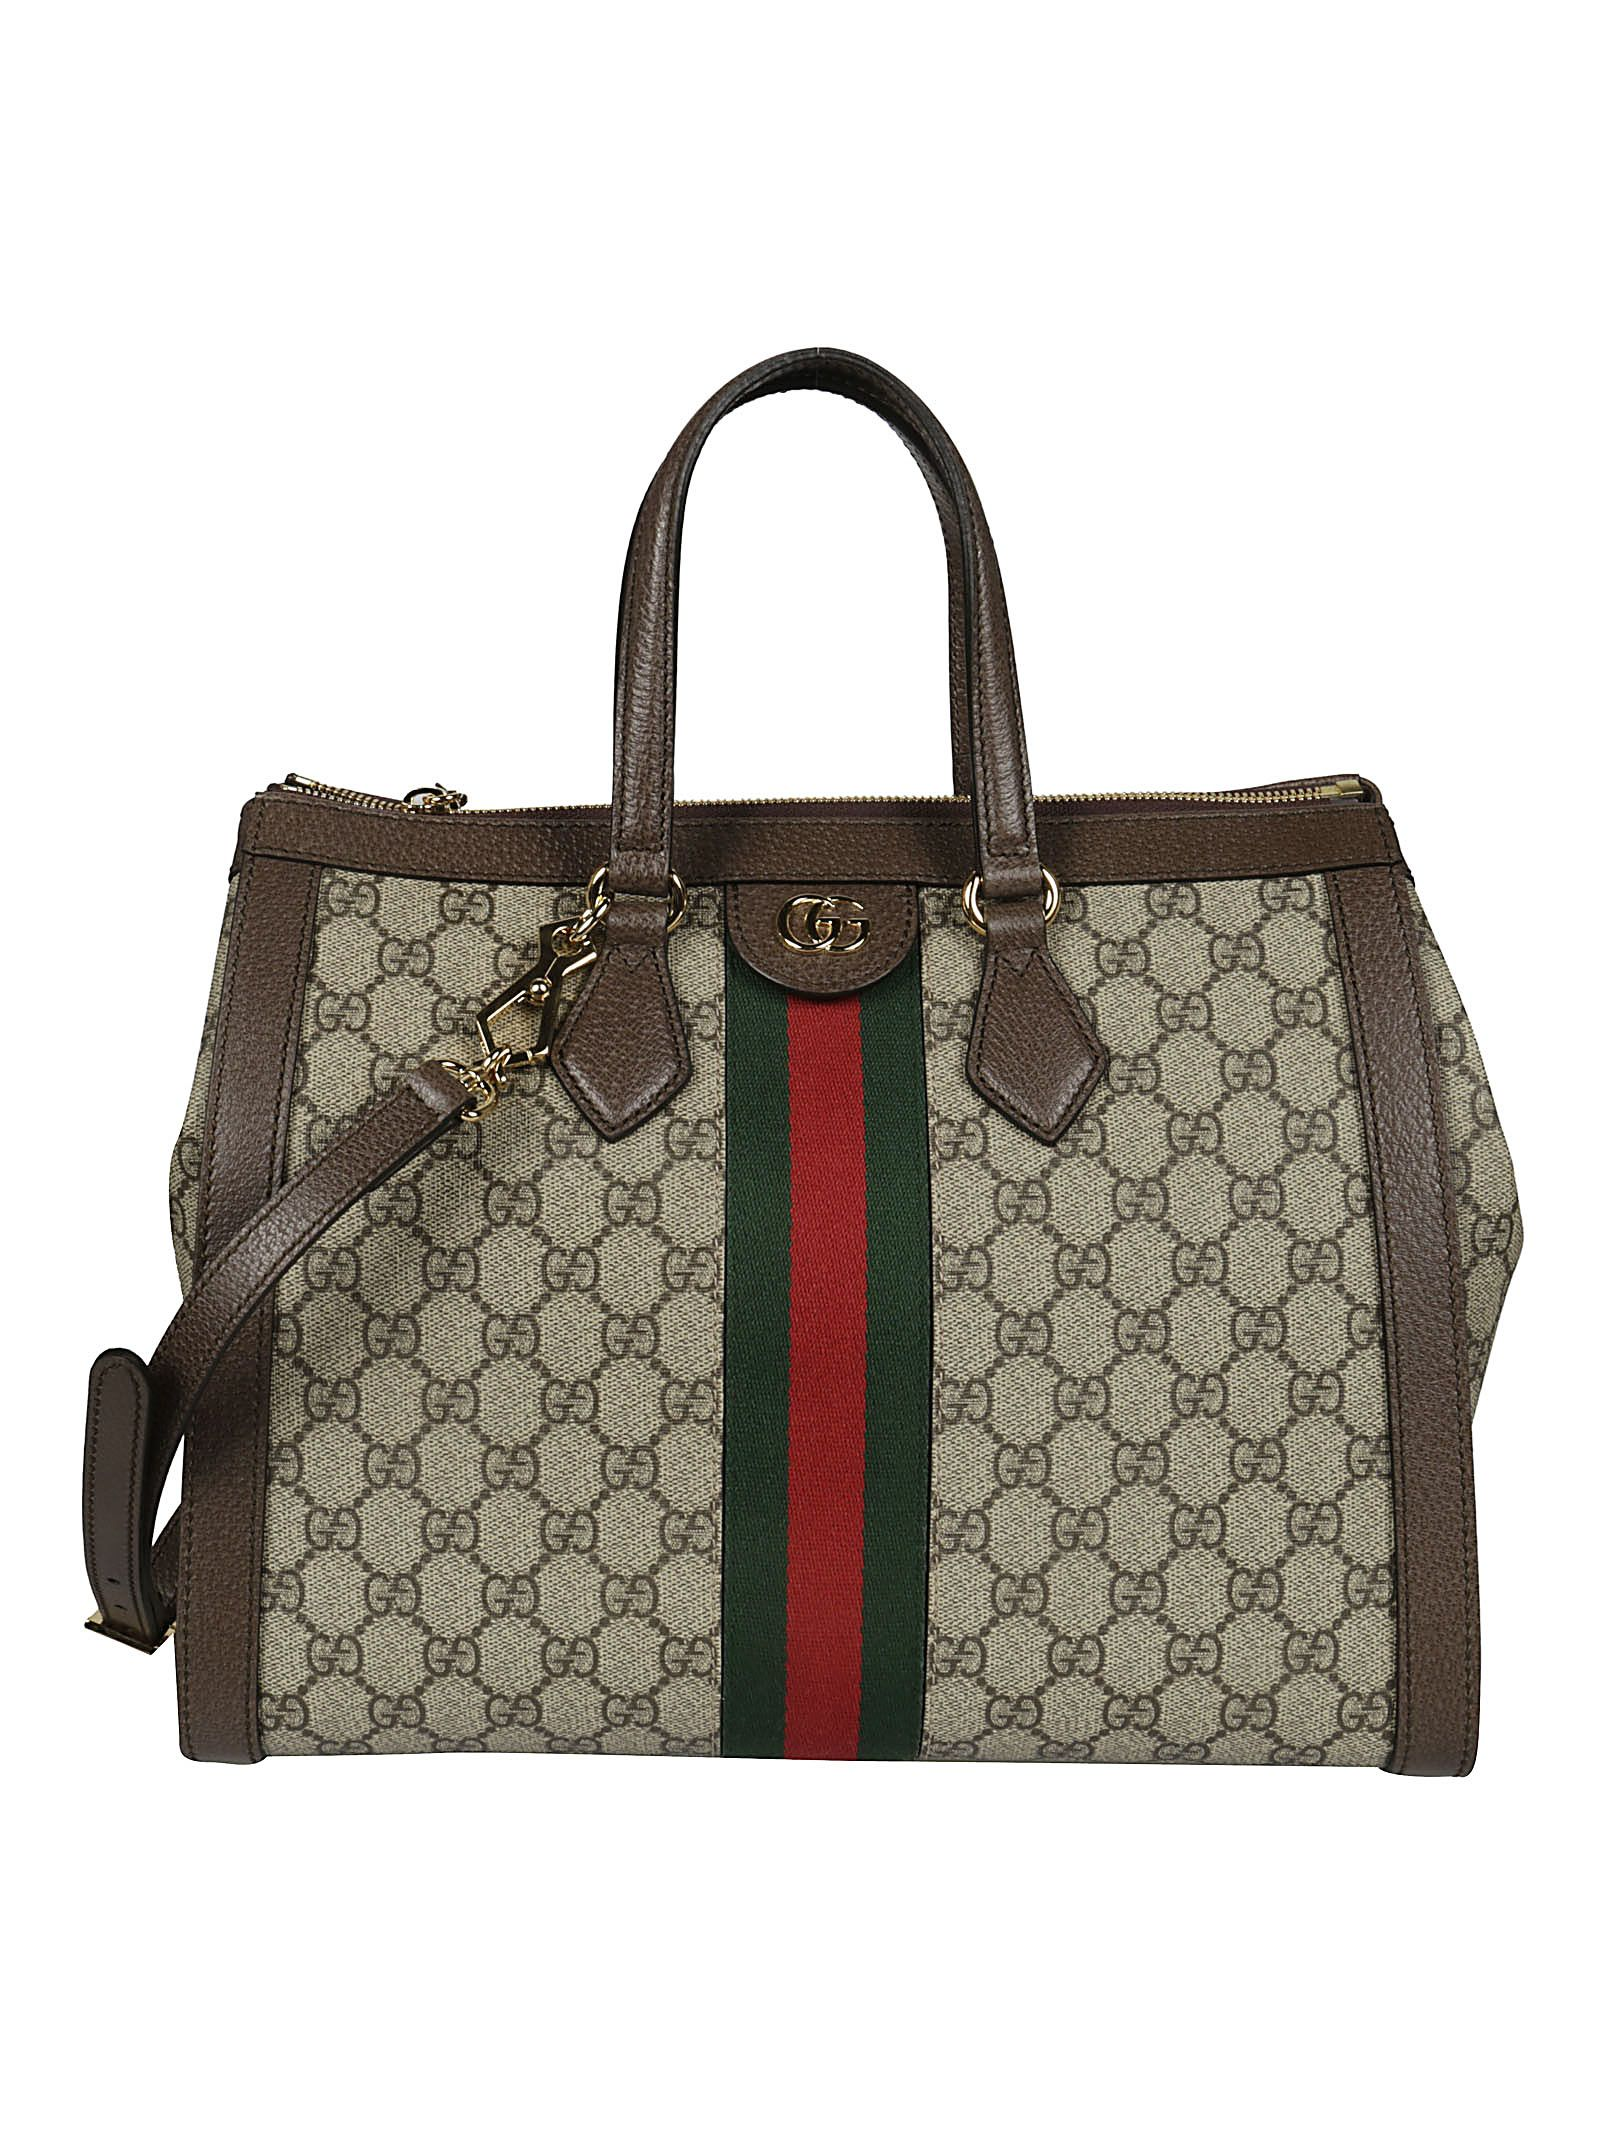 14a59ed20b39 Gucci Ophidia Tote Bag Review | Stanford Center for Opportunity ...